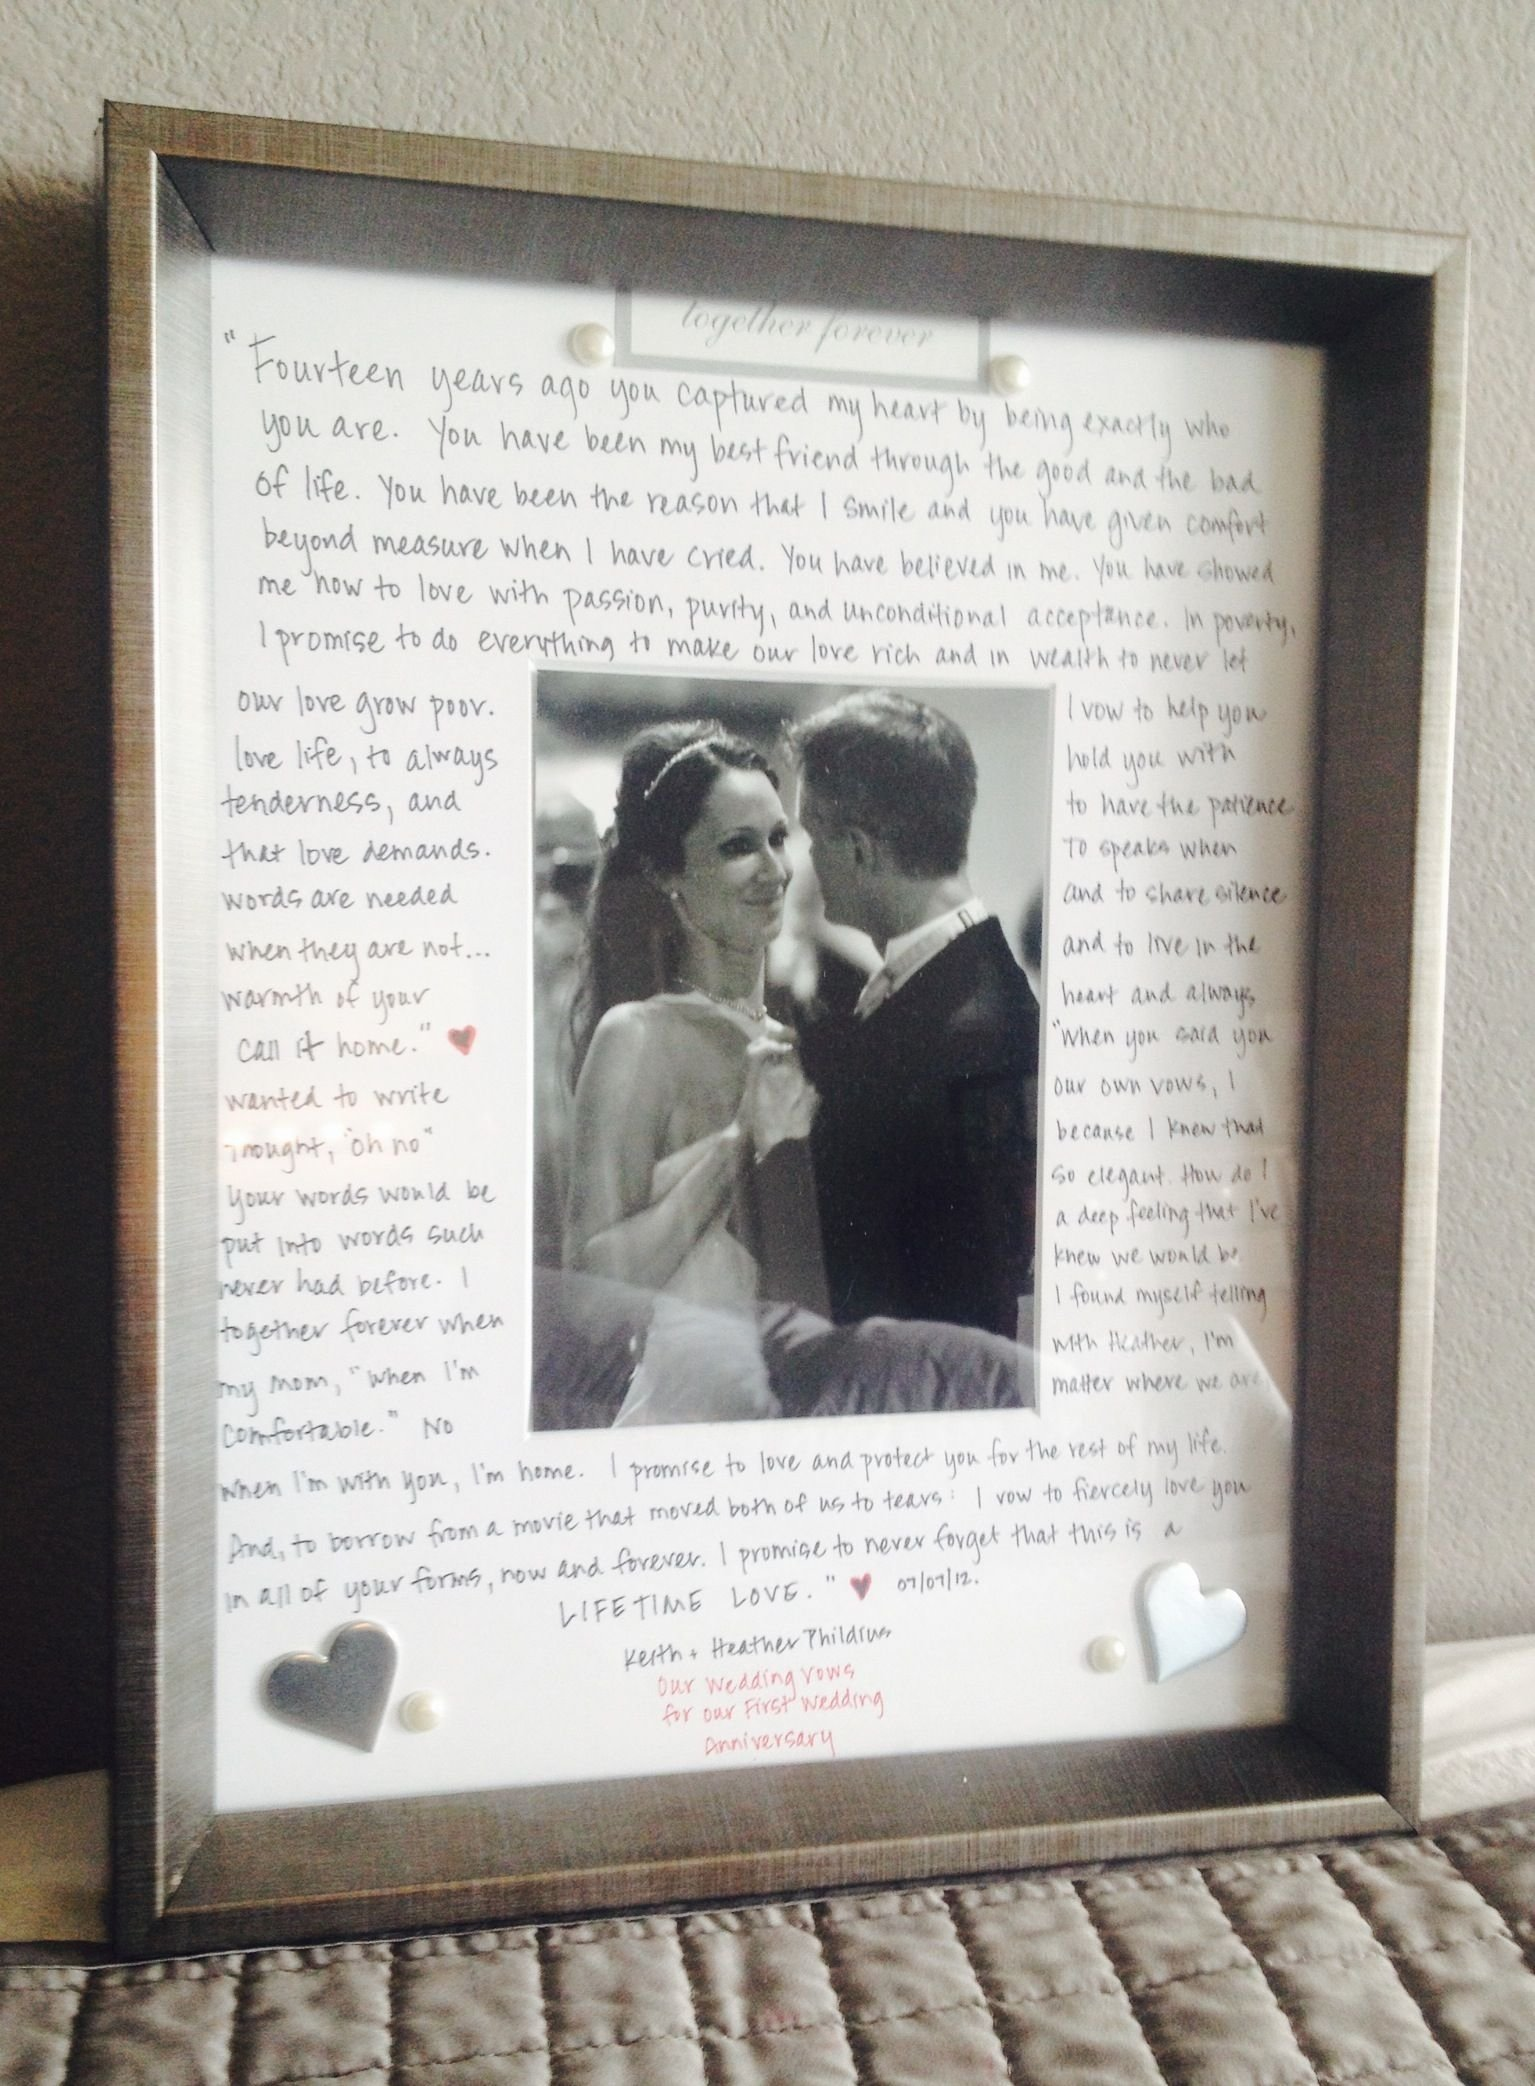 first wedding anniversary gift to my husband - our vows written out